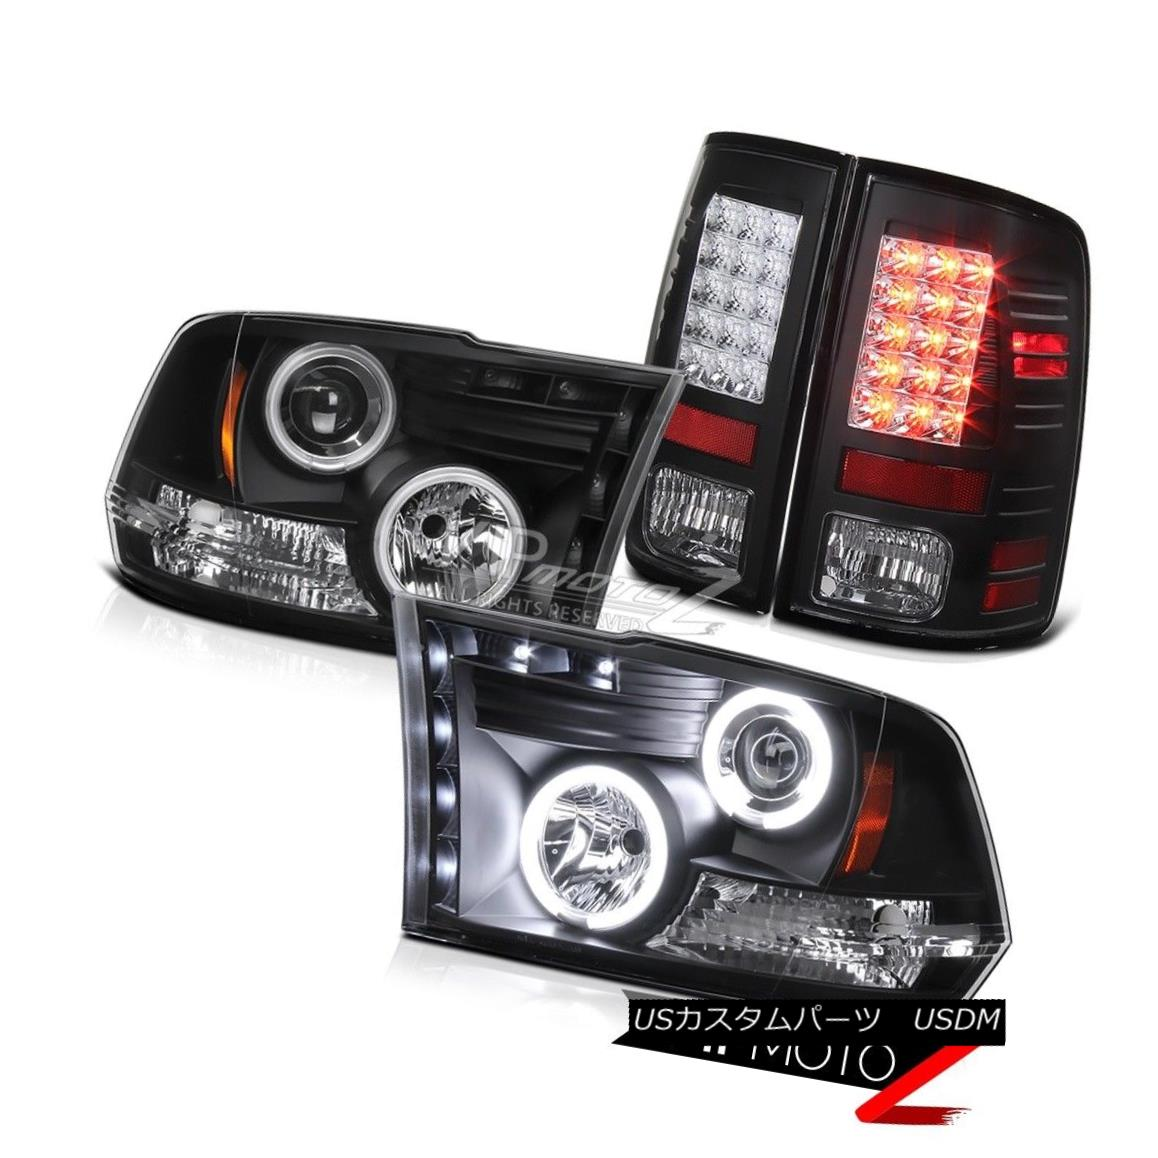 ヘッドライト 2009-2010-2011-2012-2013-2018-2018 Dodge Ram LED CCFL Headlight Tail Light BLACK 2009-2010-2011  -2012-2013-201  8-2018 Dodge Ram LED CCFLヘッドライトテールライトBLACK